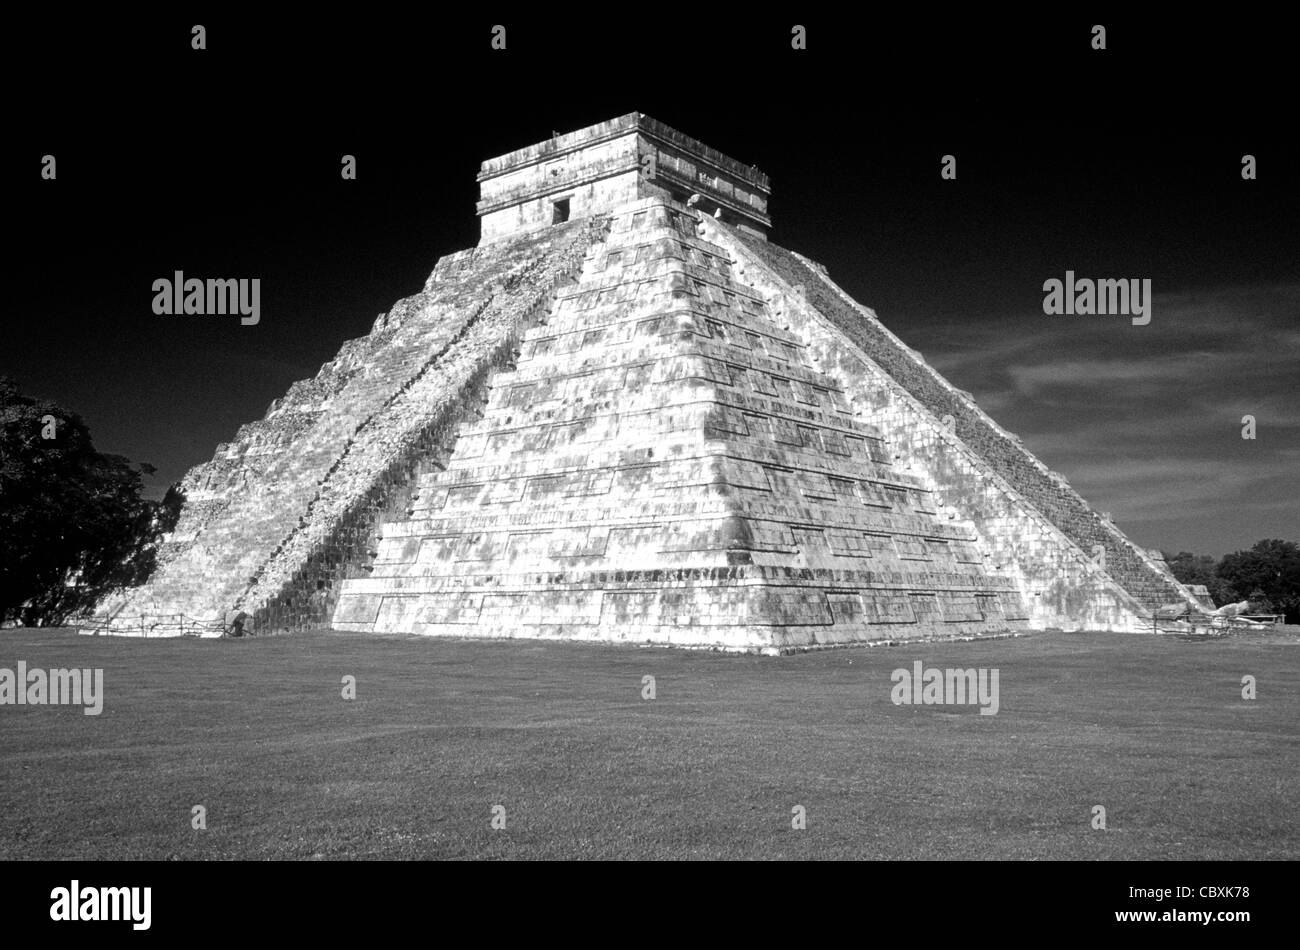 el-castillo-or-pyramid-of-kukulcan-at-th